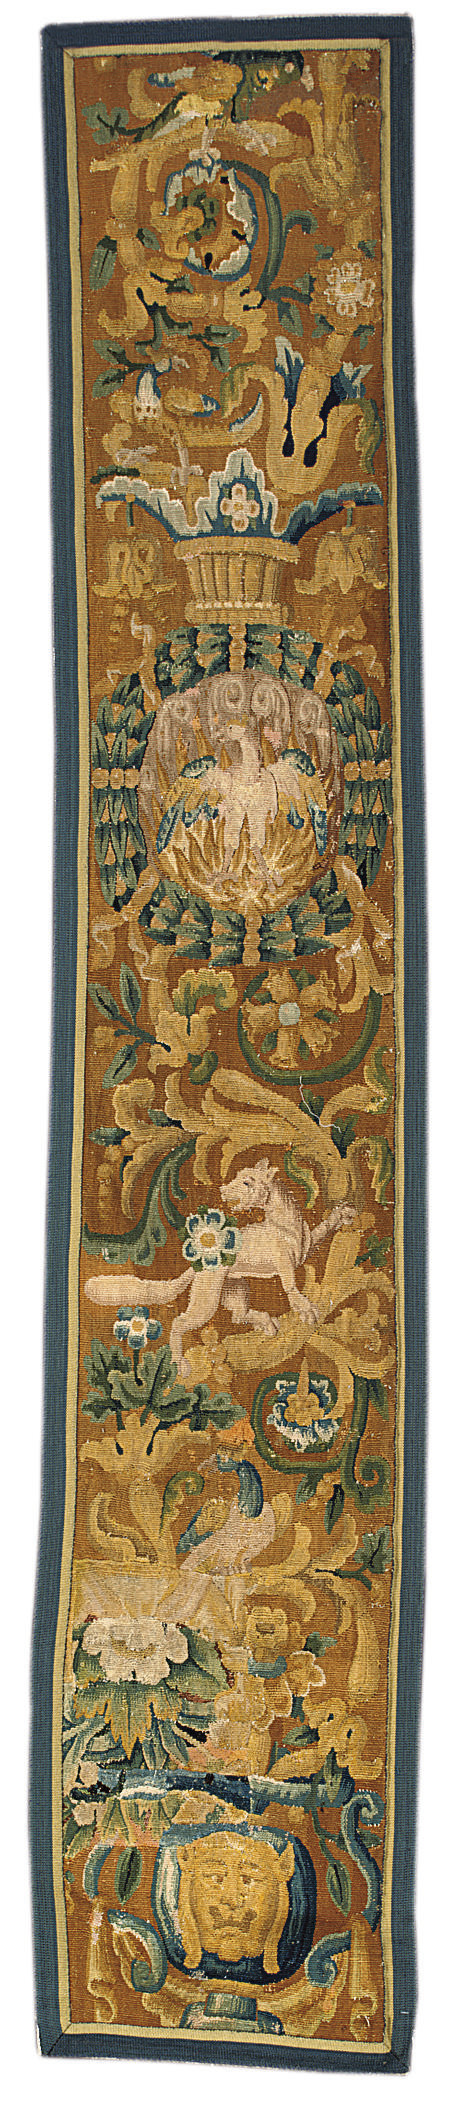 A TAPESTRY BORDER FRAGMENT